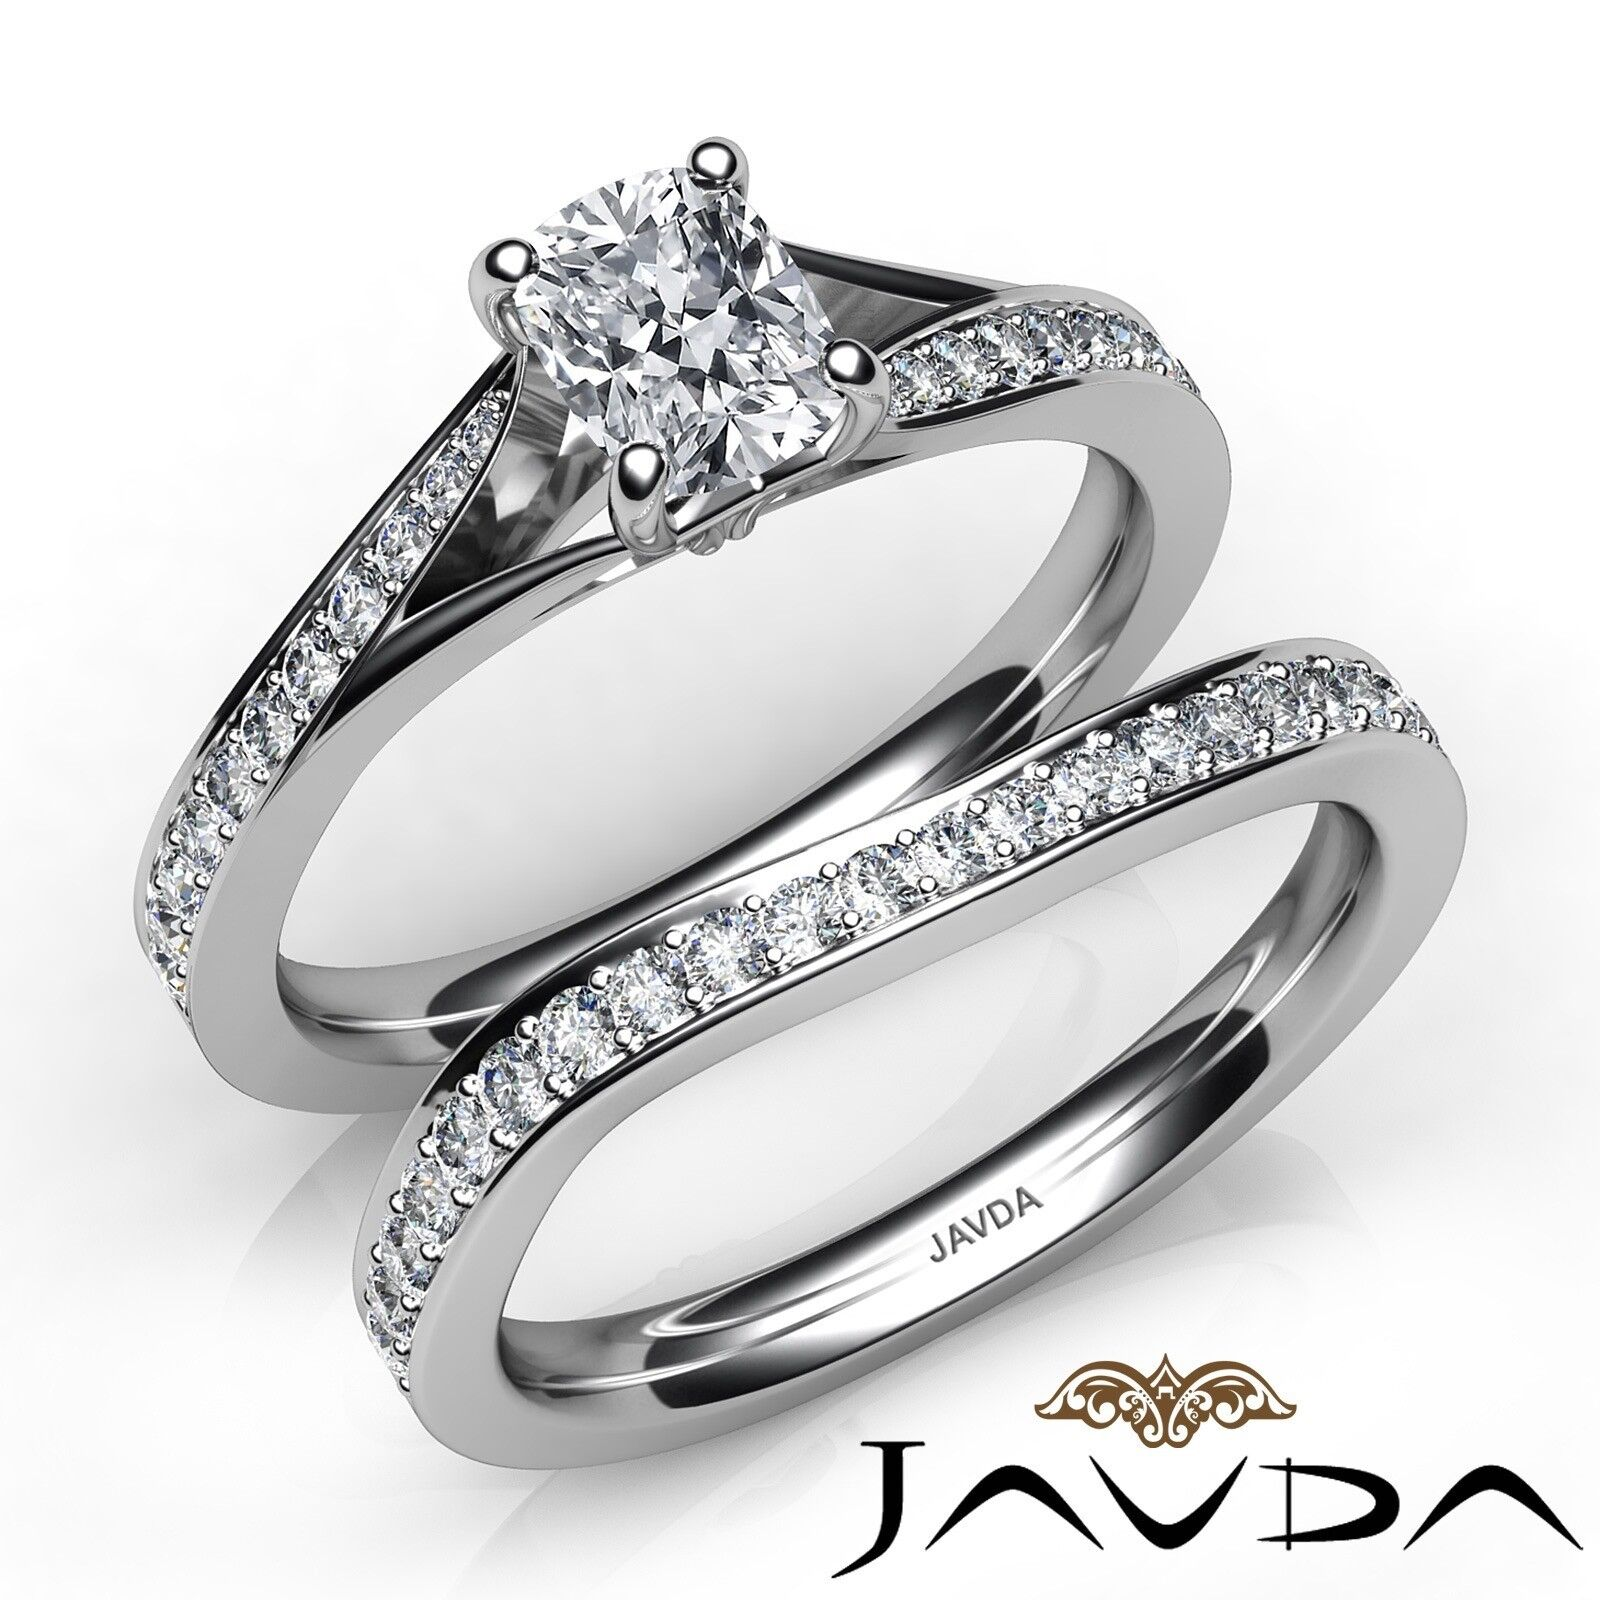 1.5ctw Pave Classic Bridal Cushion Diamond Engagement Ring GIA E-VVS2 White Gold